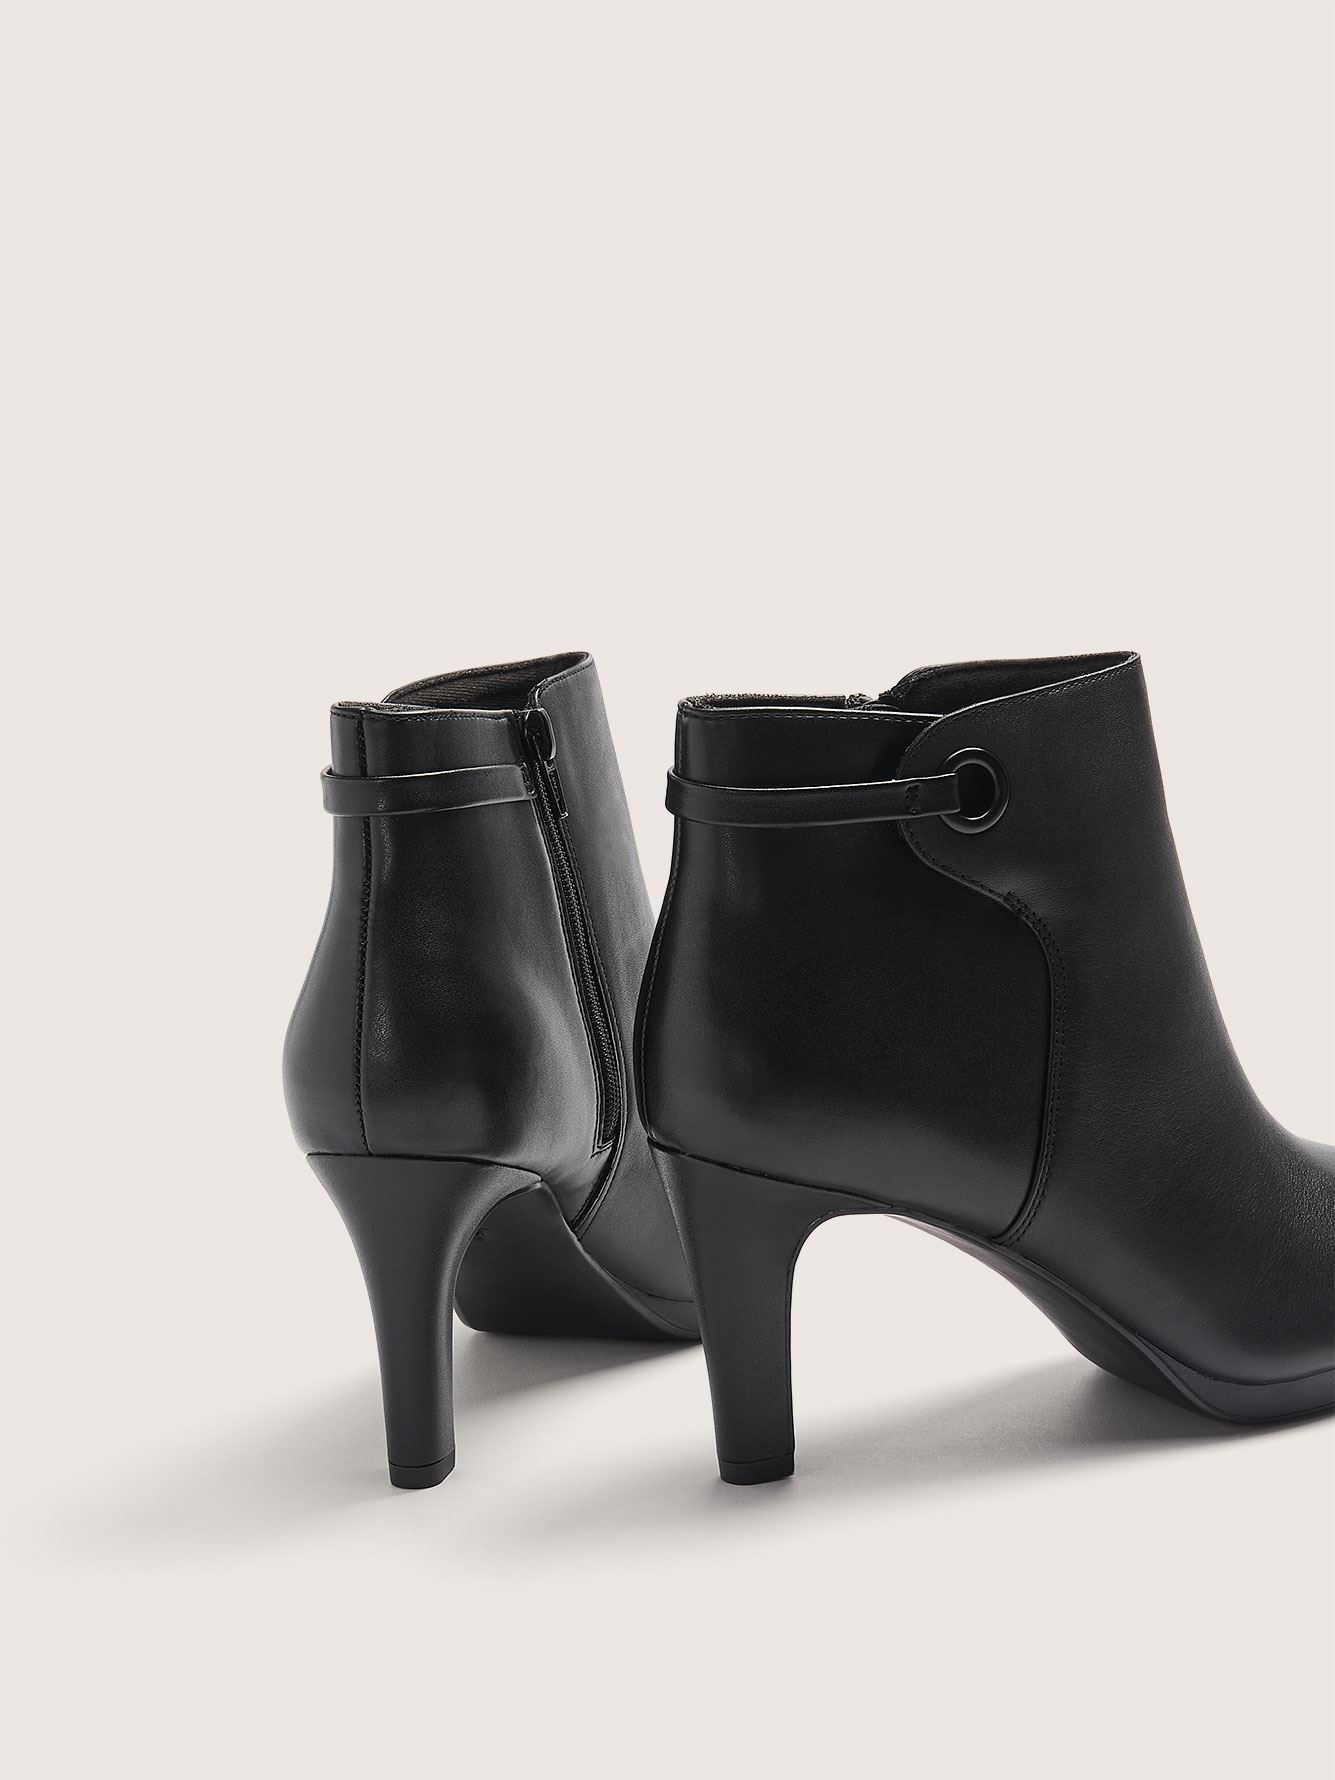 Wide Adriel Mae Leather Booties with Ring Detail - Clarks